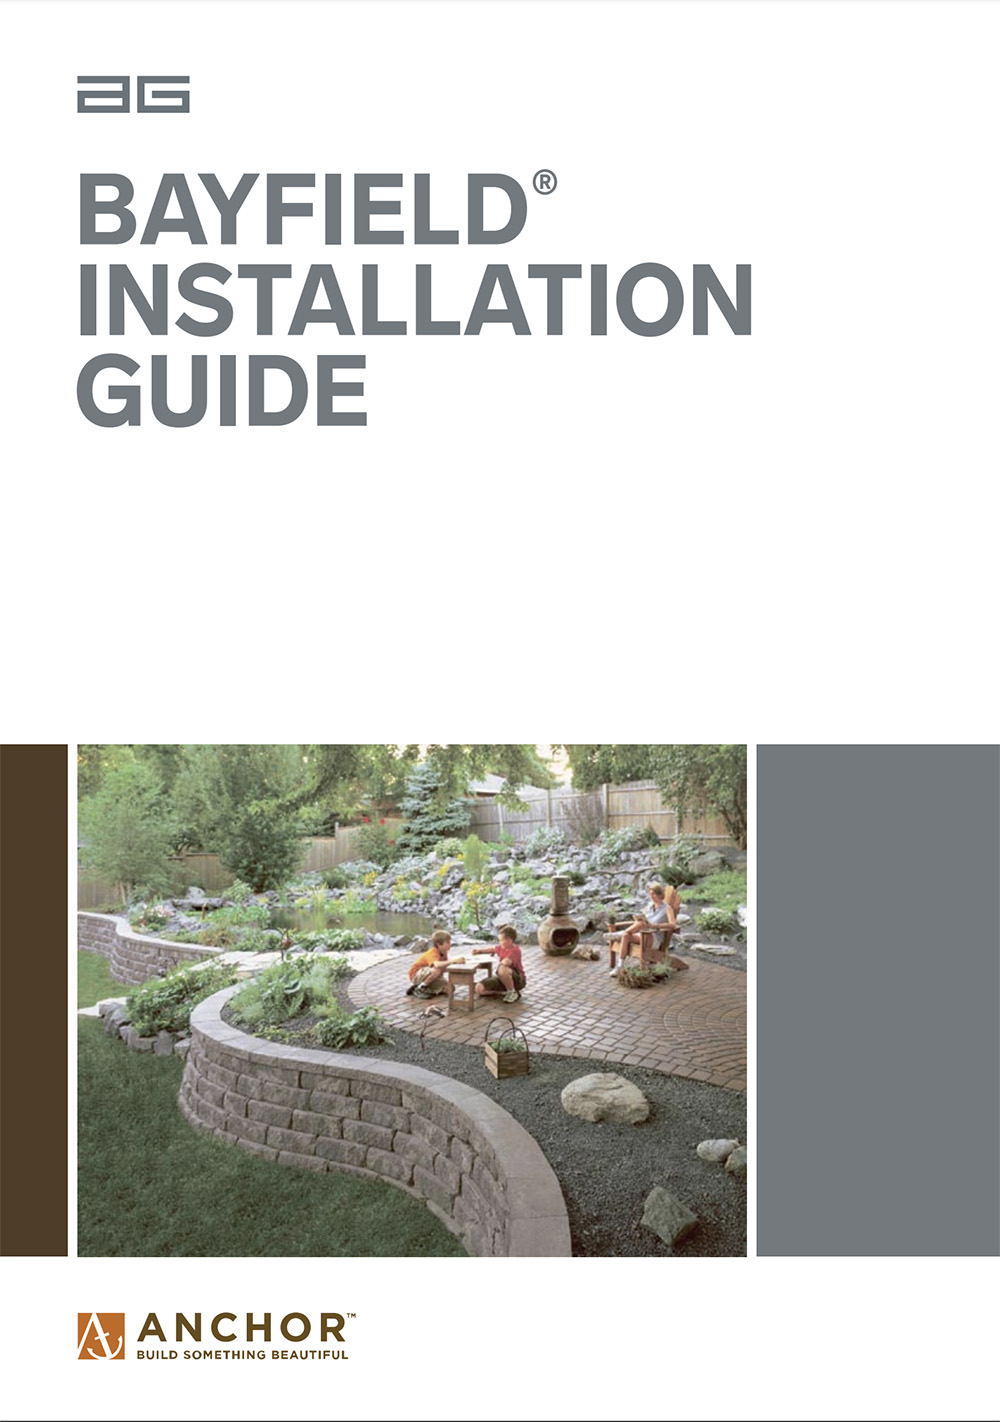 Associated image for the download: Anchor Bayfield® Installation Guide